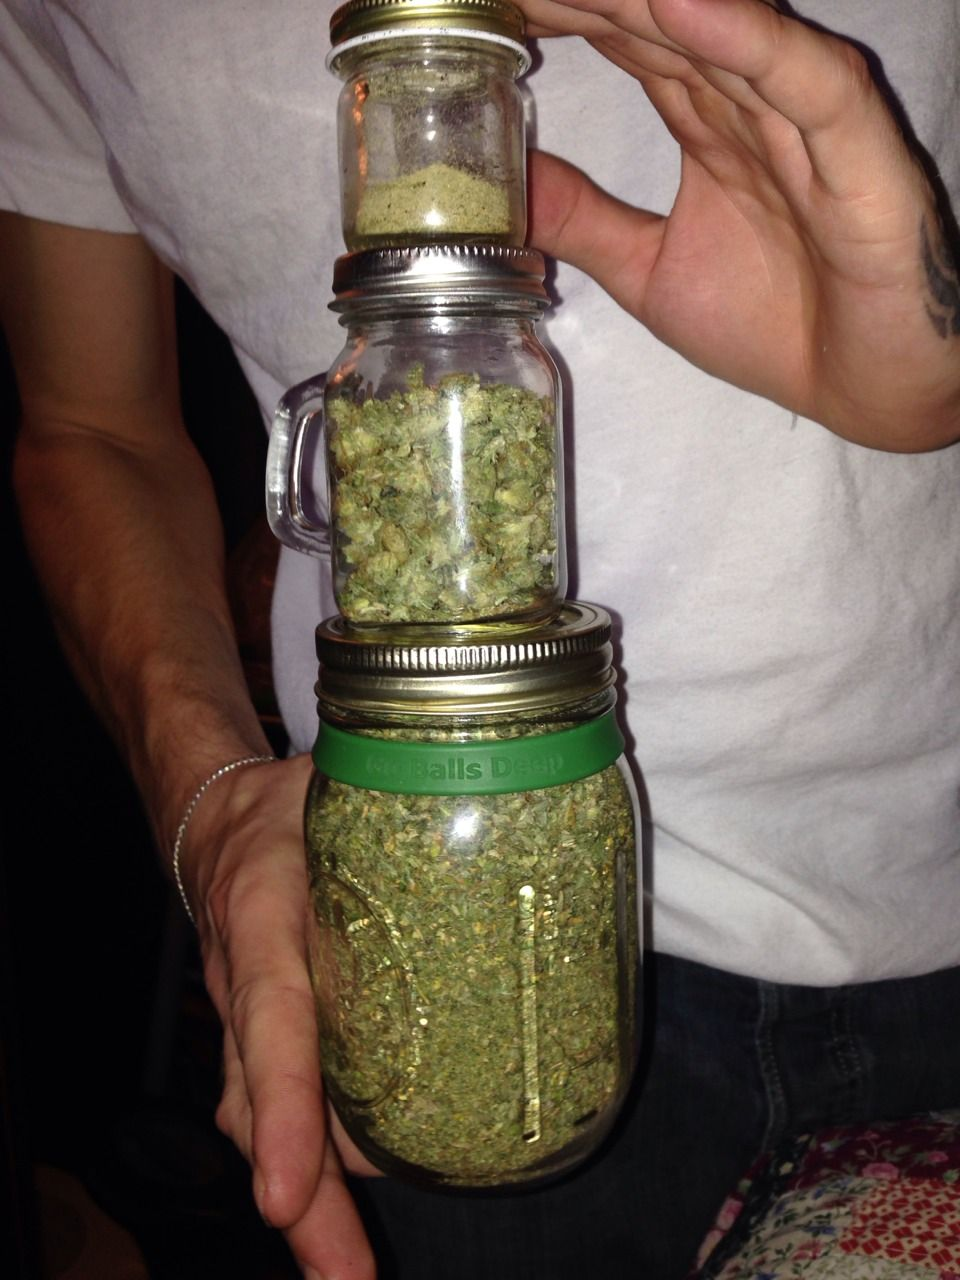 kief bud trim jars stash box pinterest